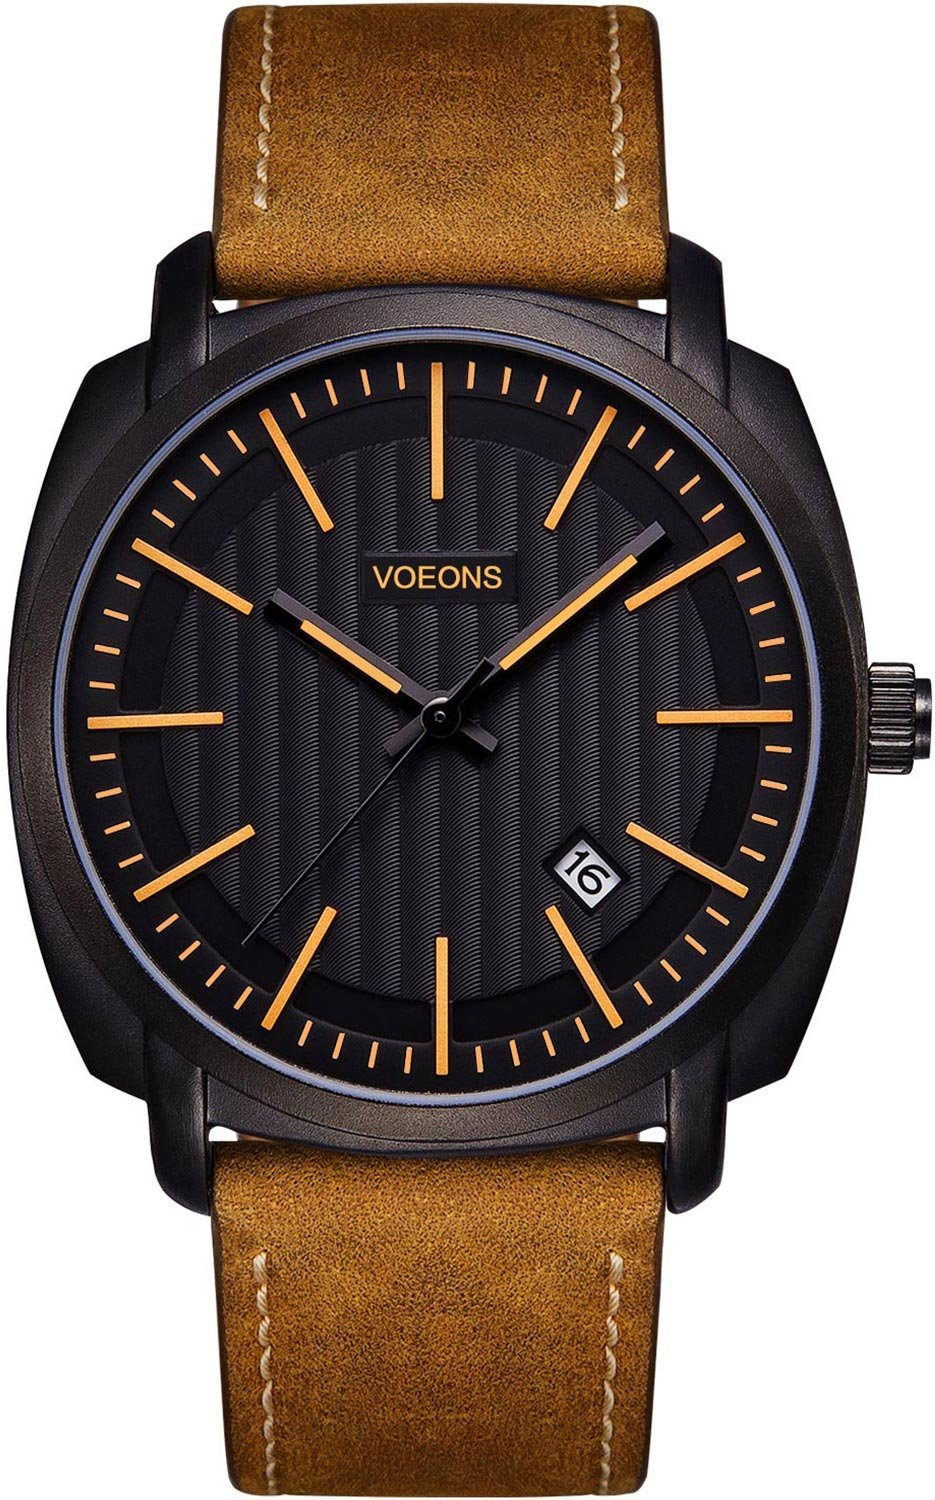 VOEONS Leather Watches for Mens Brown Genuine Leather Business Watch Analog Quartz Classical Casual Watches for Men, Teens, Waterproof, Calendar